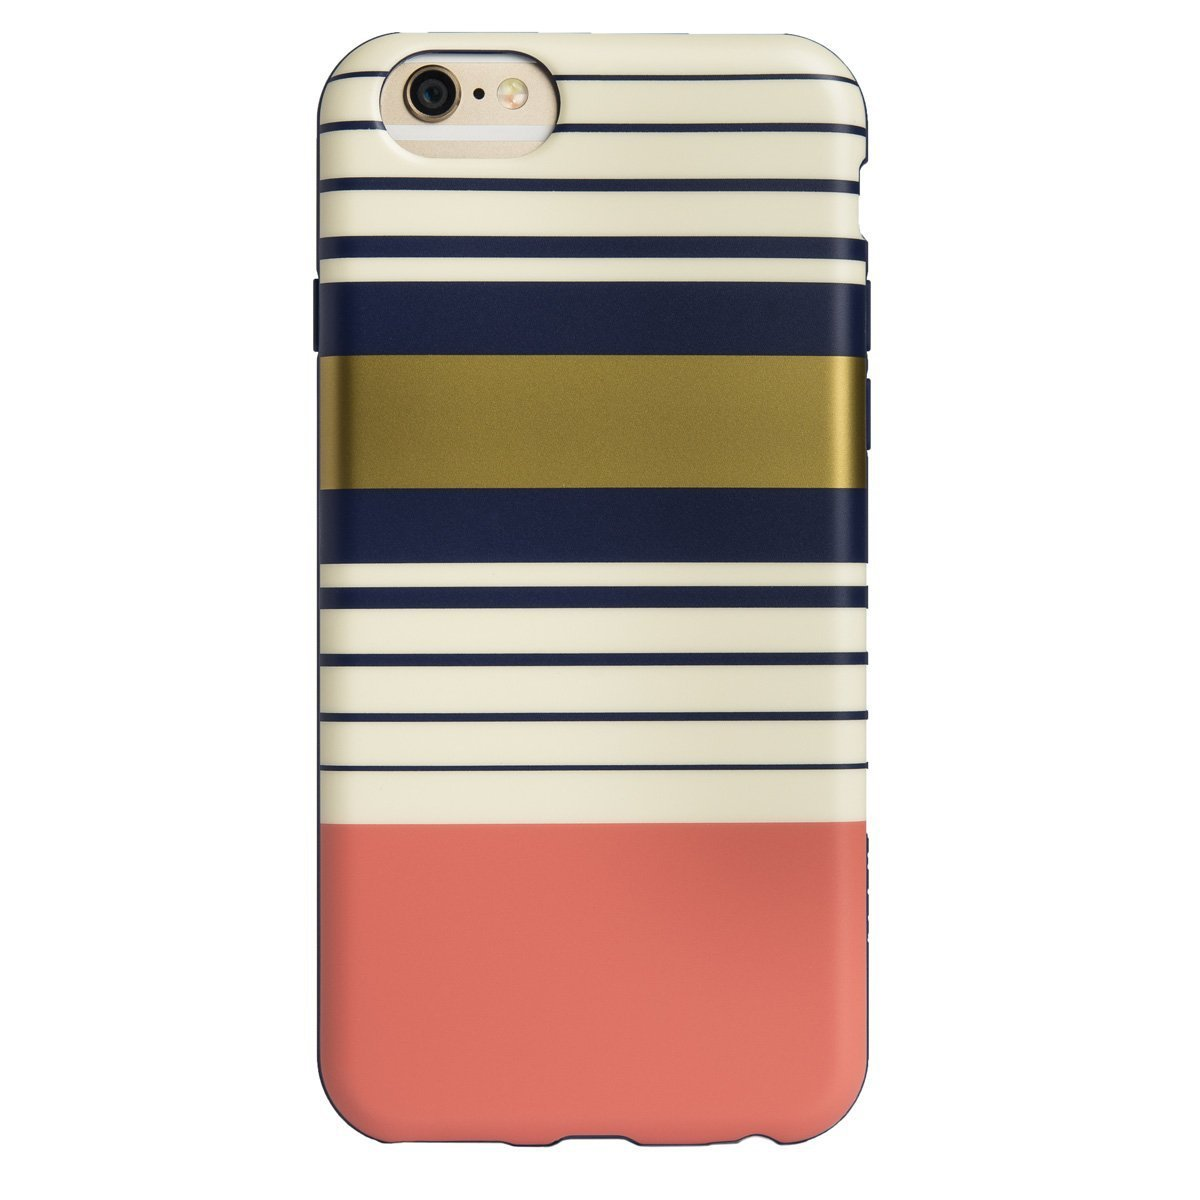 Agent18 iPhone 6 / iPhone 6S Case, - Preppy Stripes - FlexShield